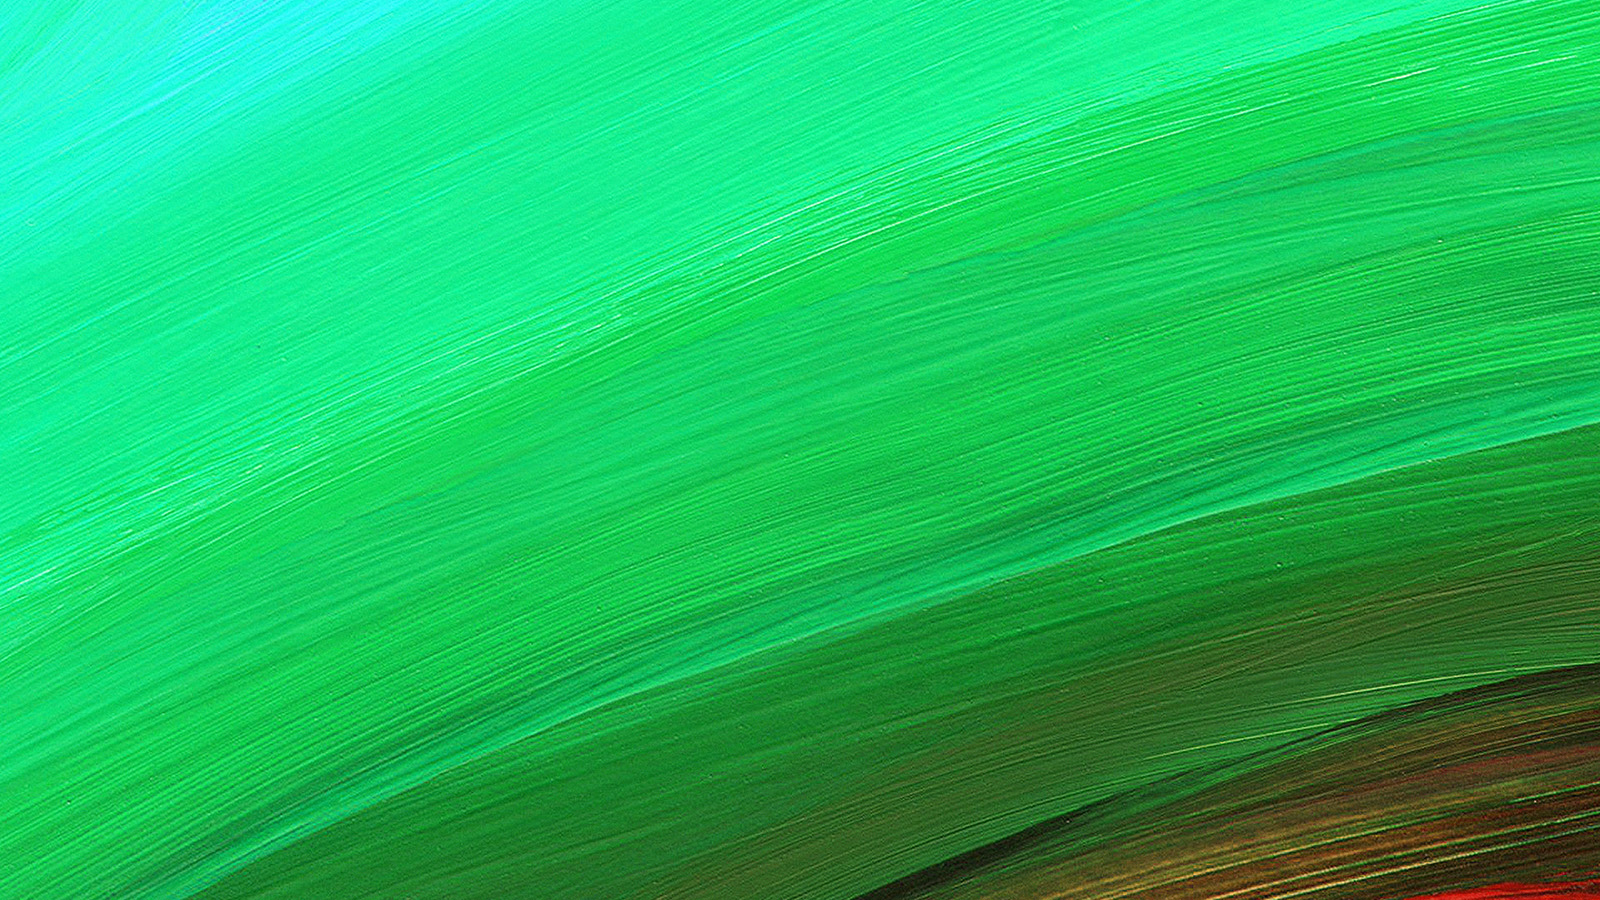 Wallpaper For Desktop Laptop Vr45 Rainbow Swirl Line